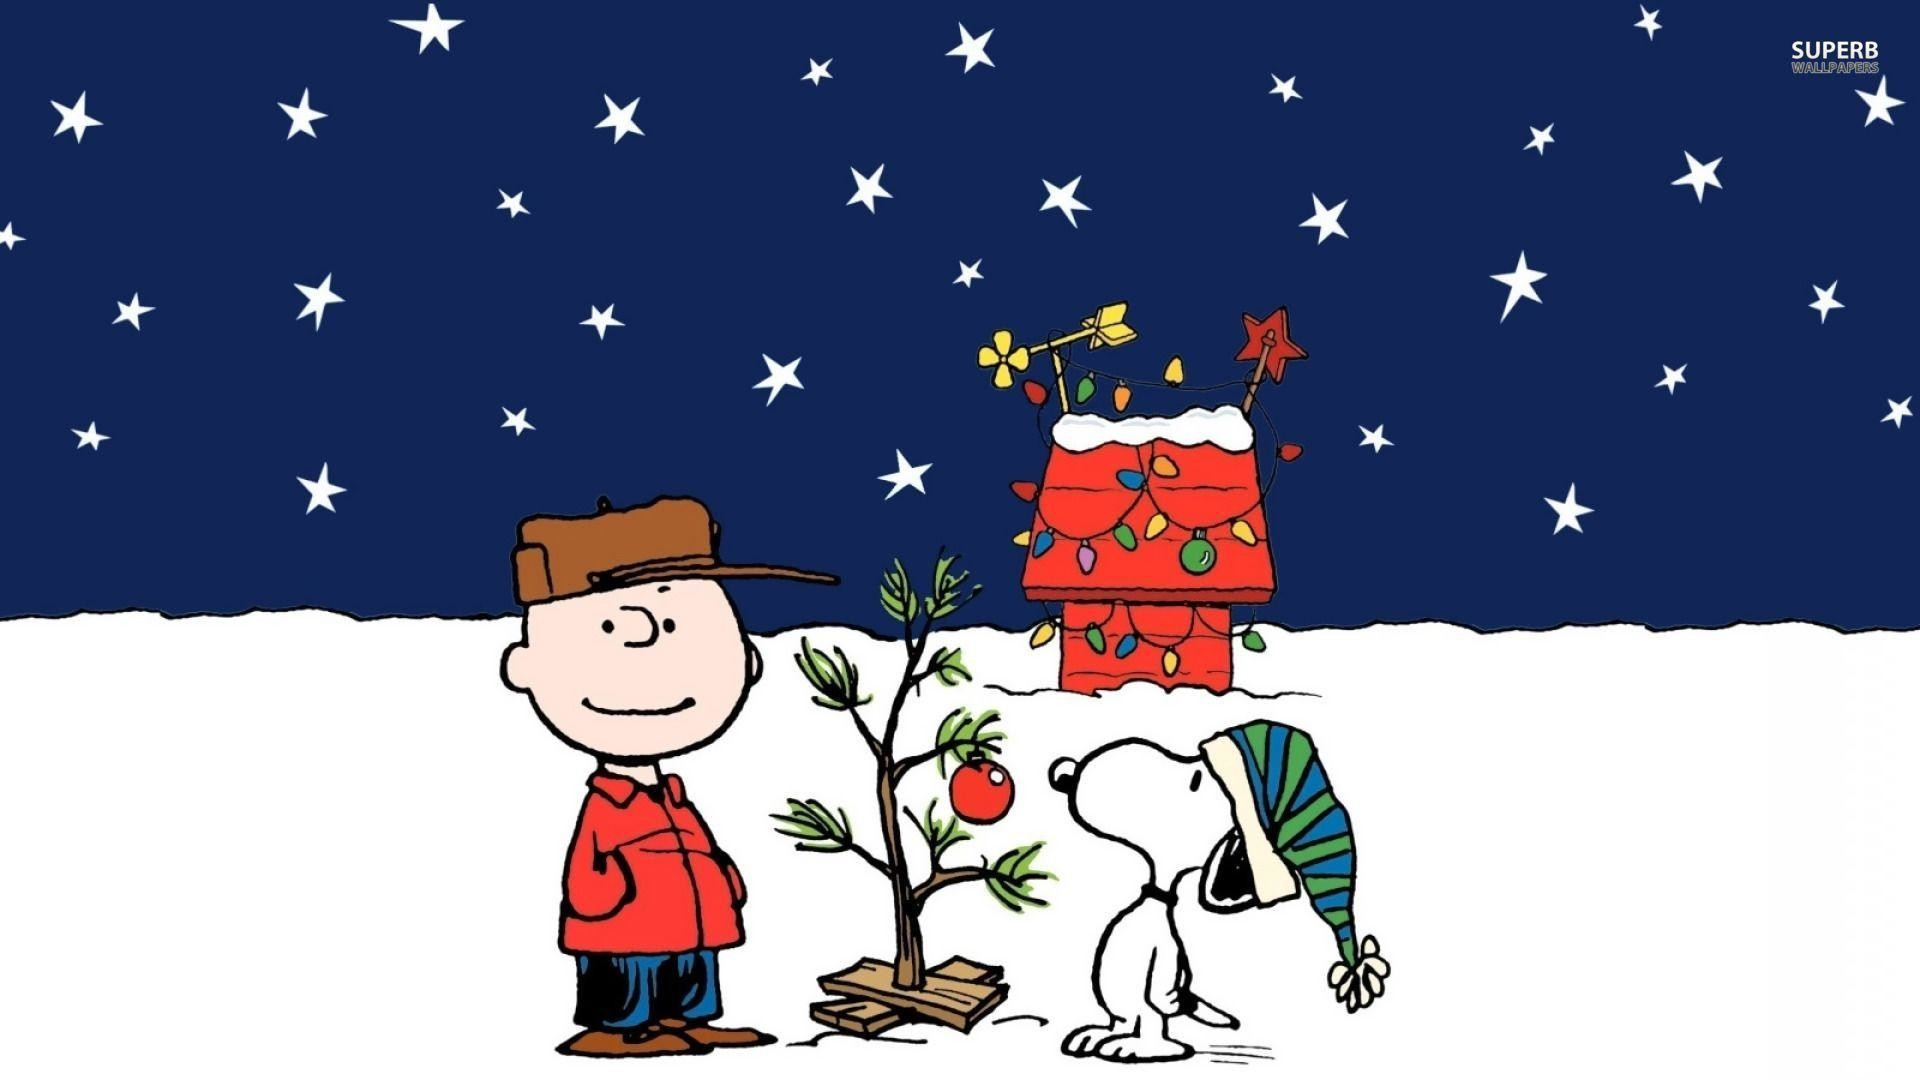 1920x1080 Wallpapers For > Charlie Brown Snoopy Christmas Wallpaper